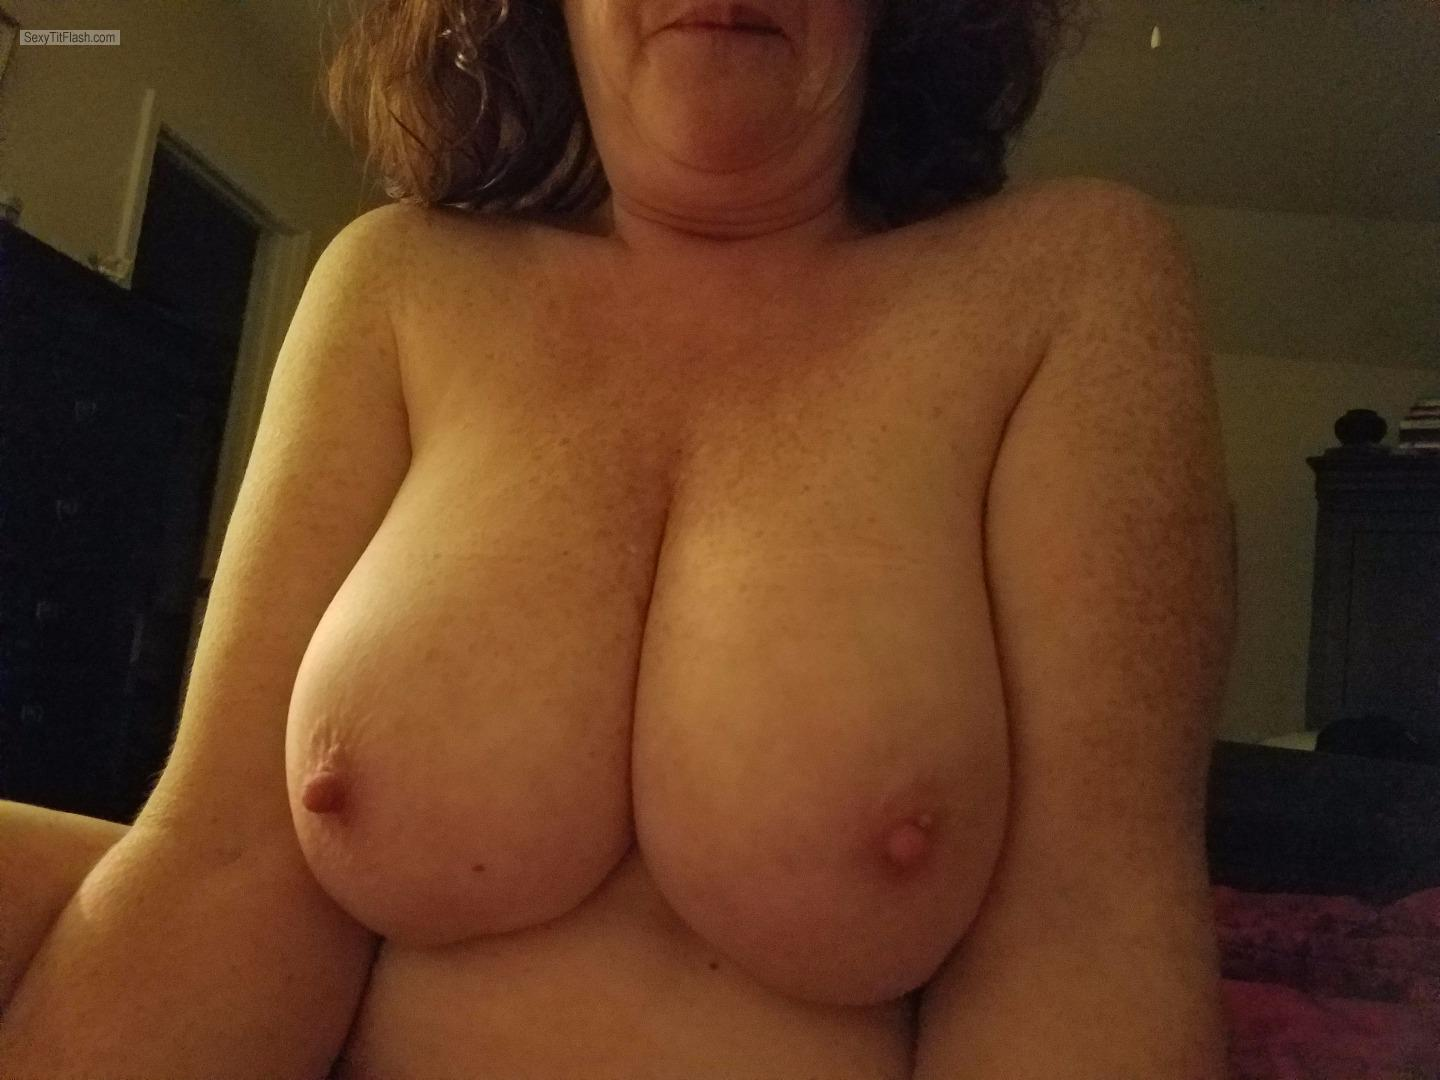 Tit Flash: My Very Big Tits - Topless Ginger Jugs from United States